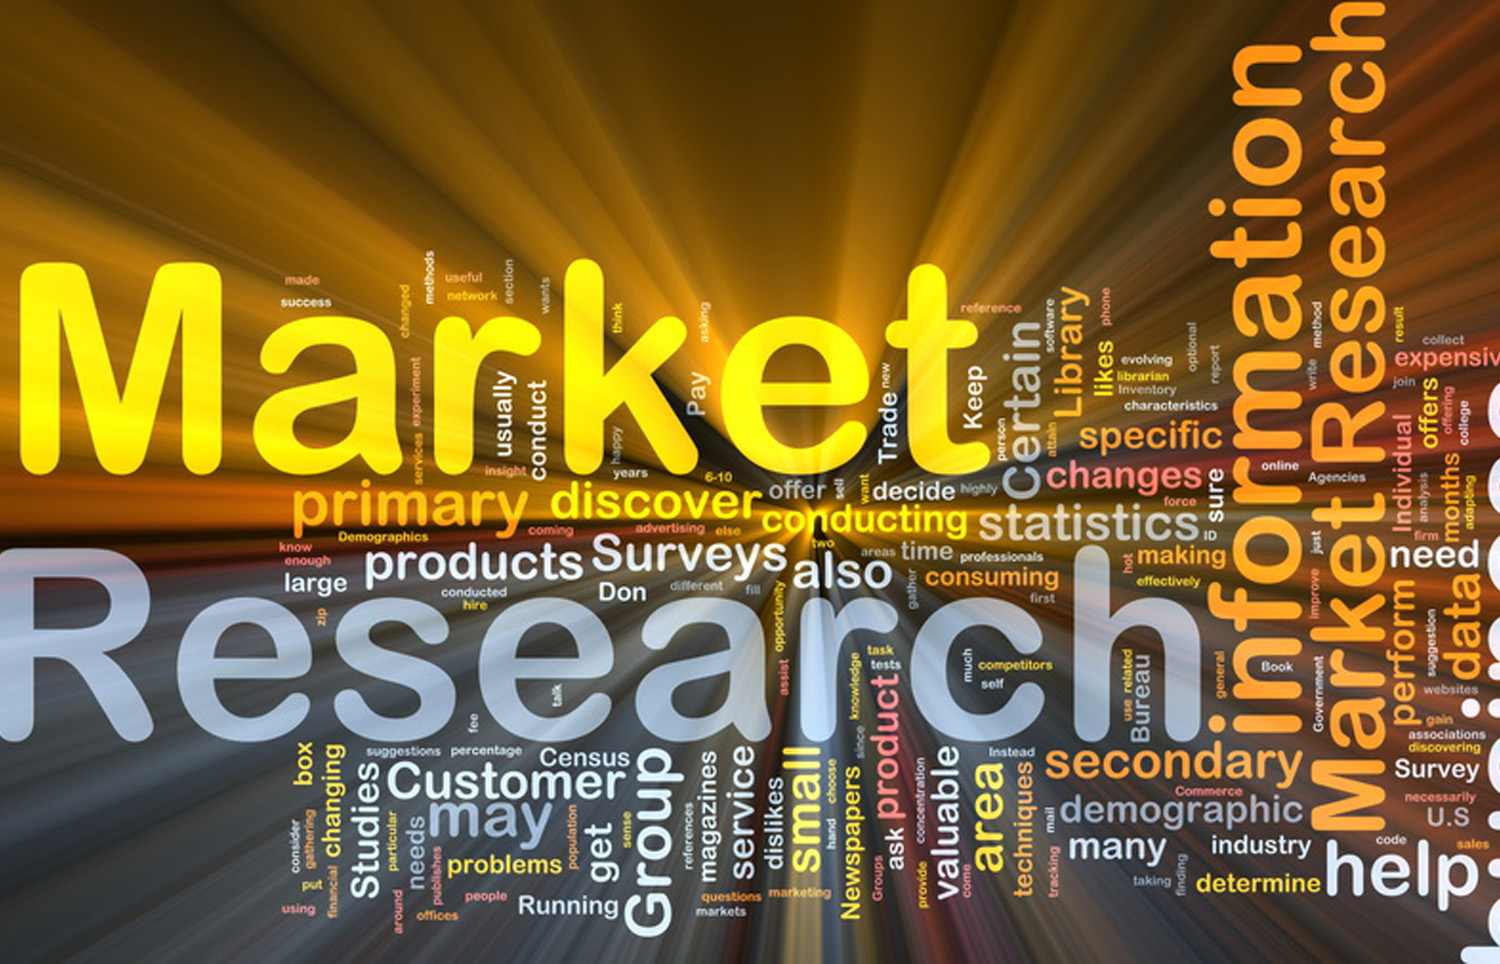 market research marketing Market research & marketing consultant in iran market research in iran | marketing consultant marketing park of iran is one of the biggest companies in the field of.